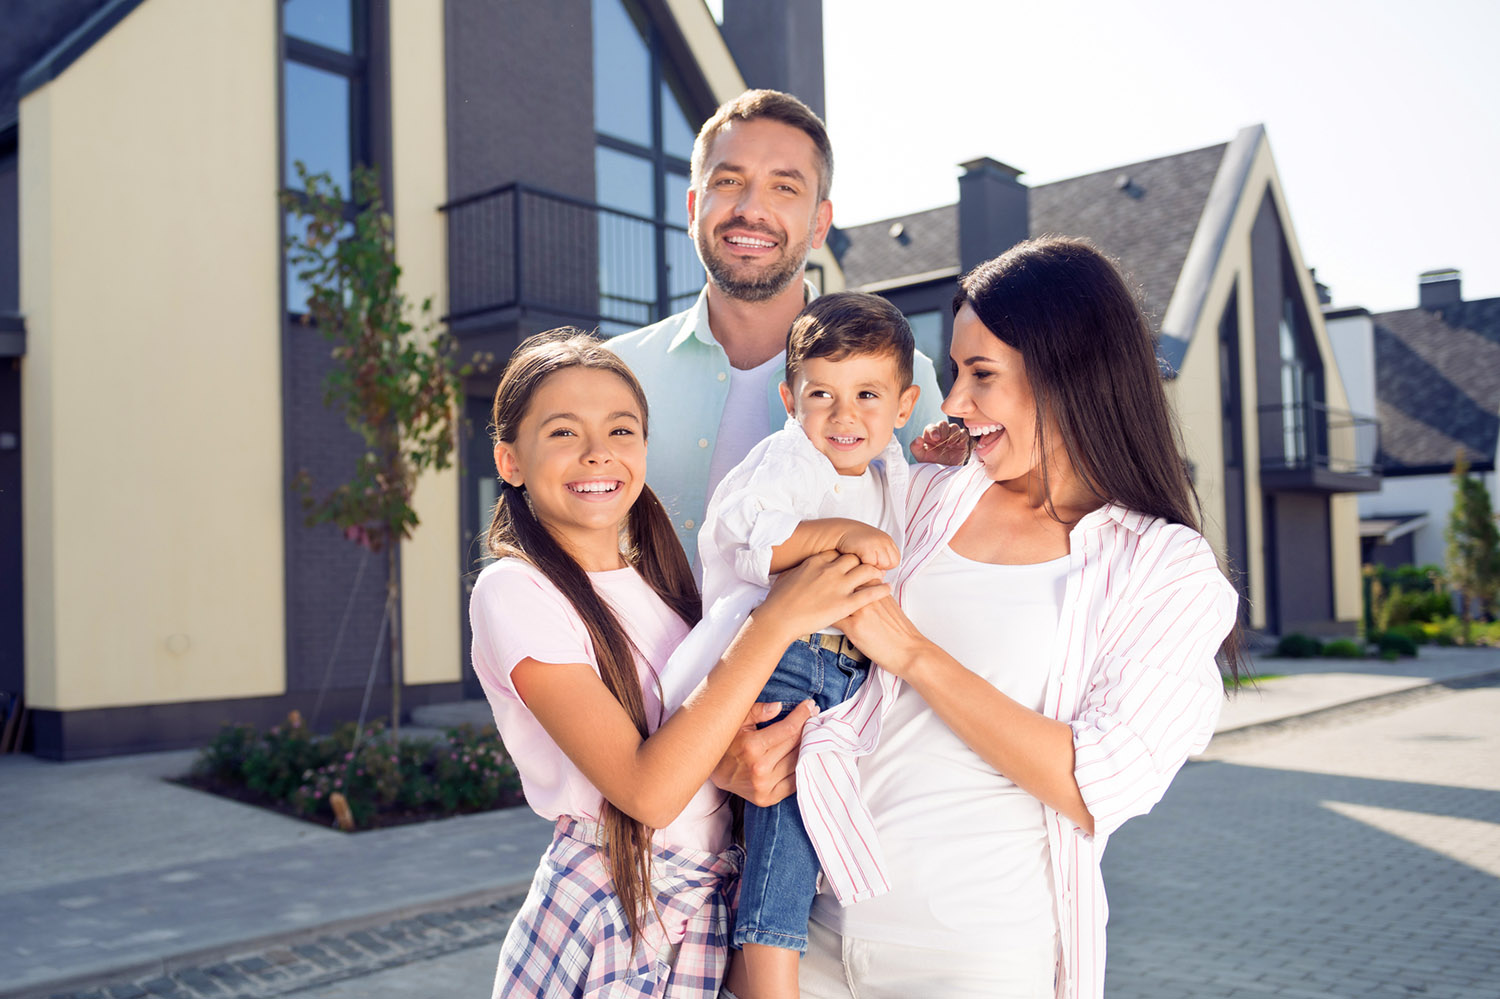 Happy family of four standing together in front of their new house after a home inspection